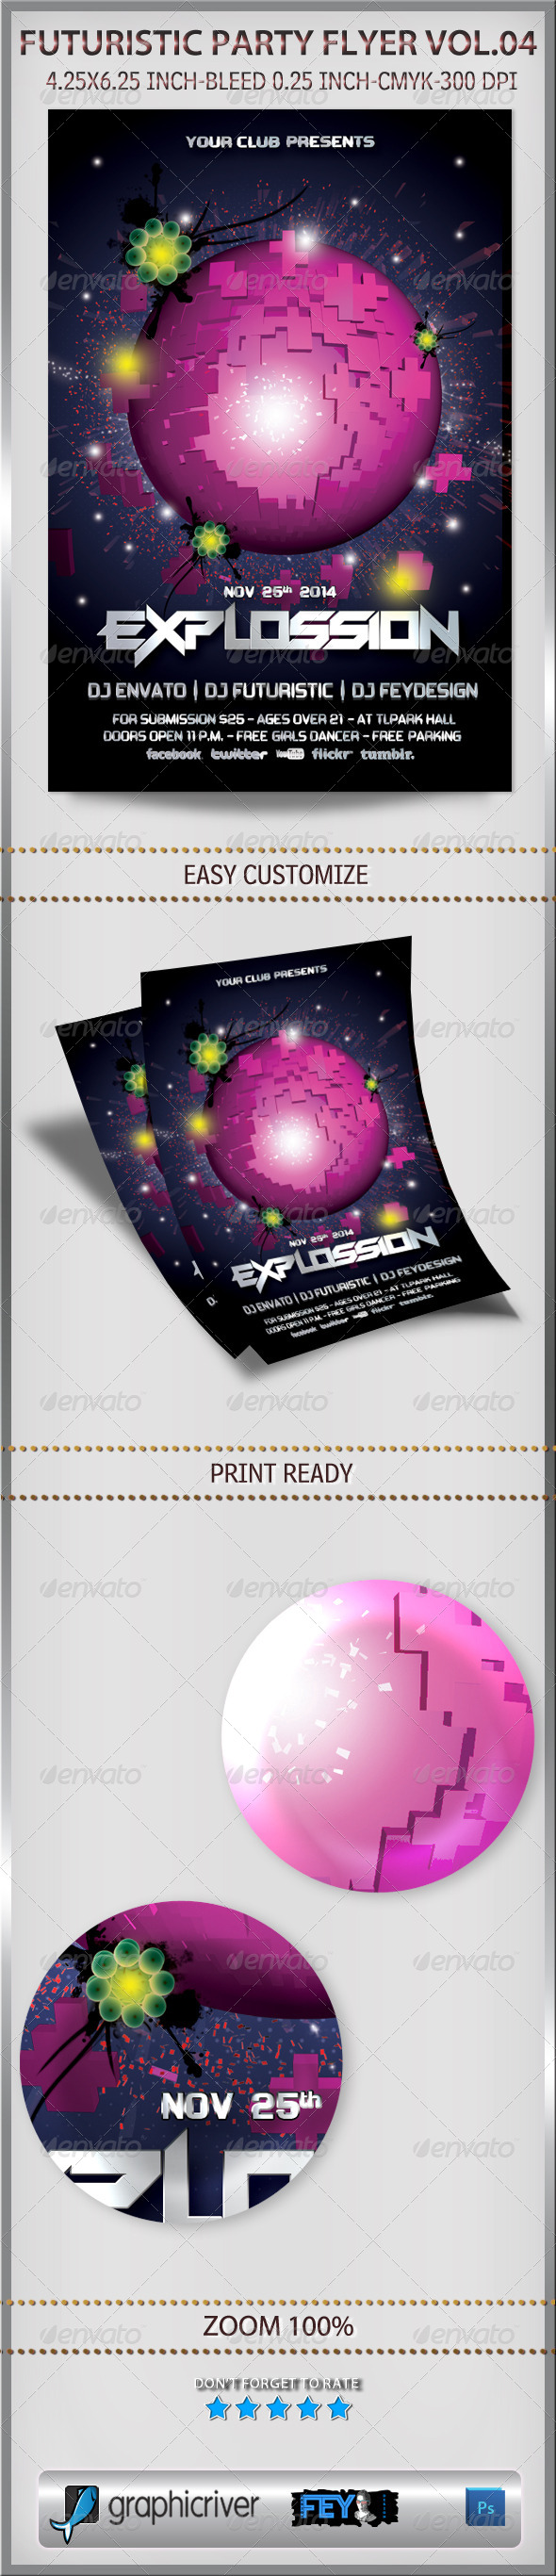 Futuristic Party Flyer Vol.04 - Clubs & Parties Events